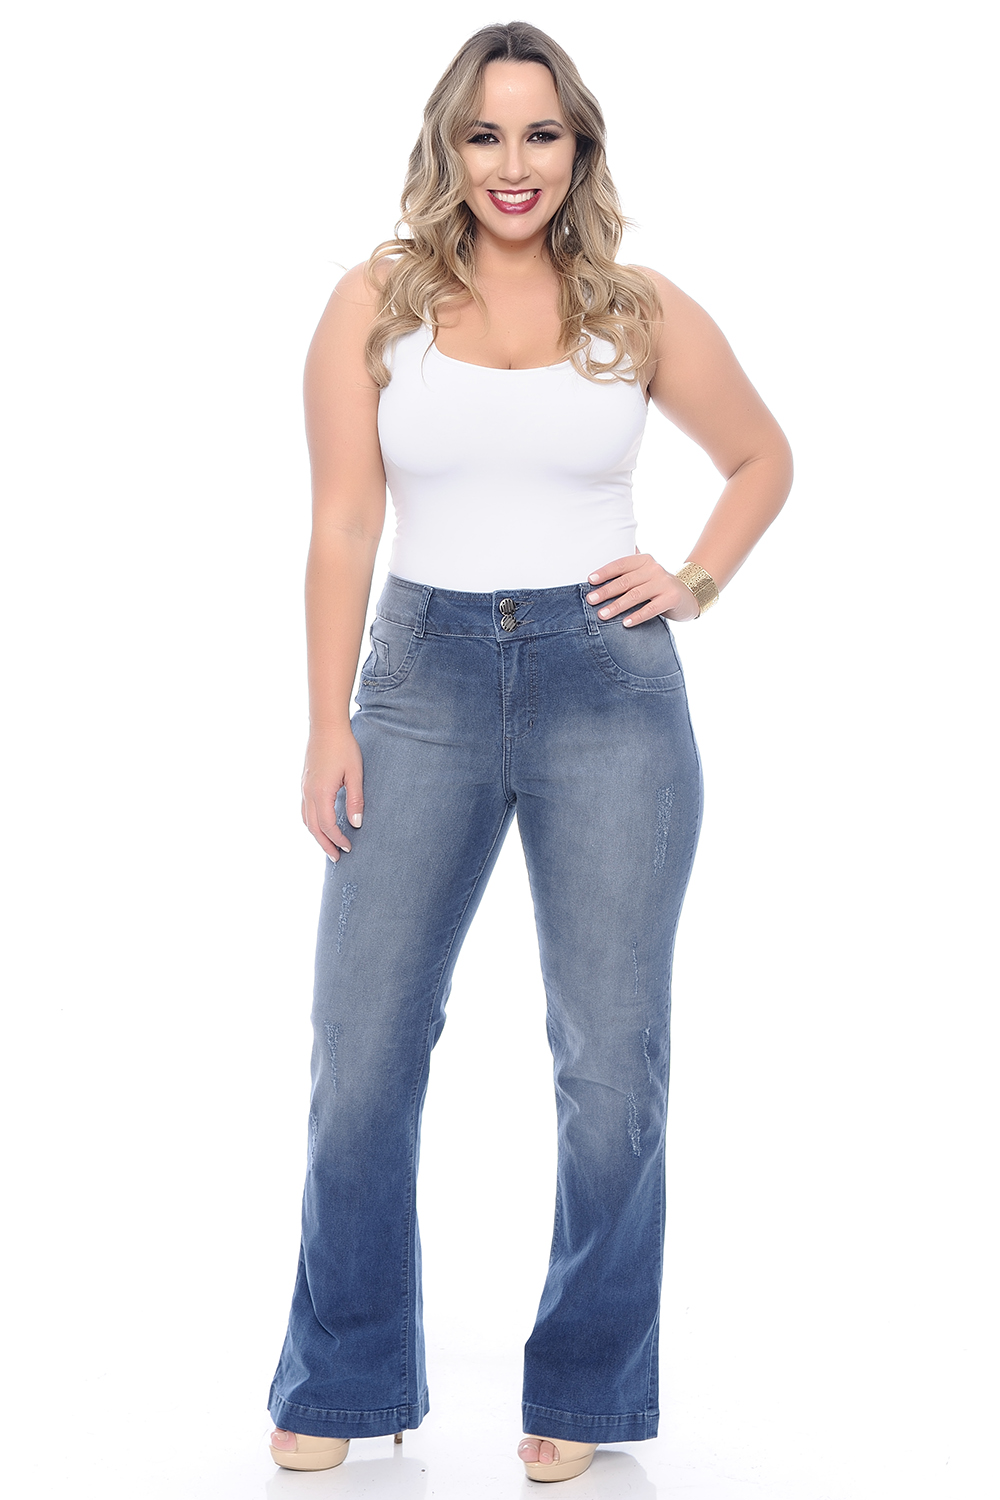 Get the best deals on plus size flare jeans and save up to 70% off at Poshmark now! Whatever you're shopping for, we've got it.